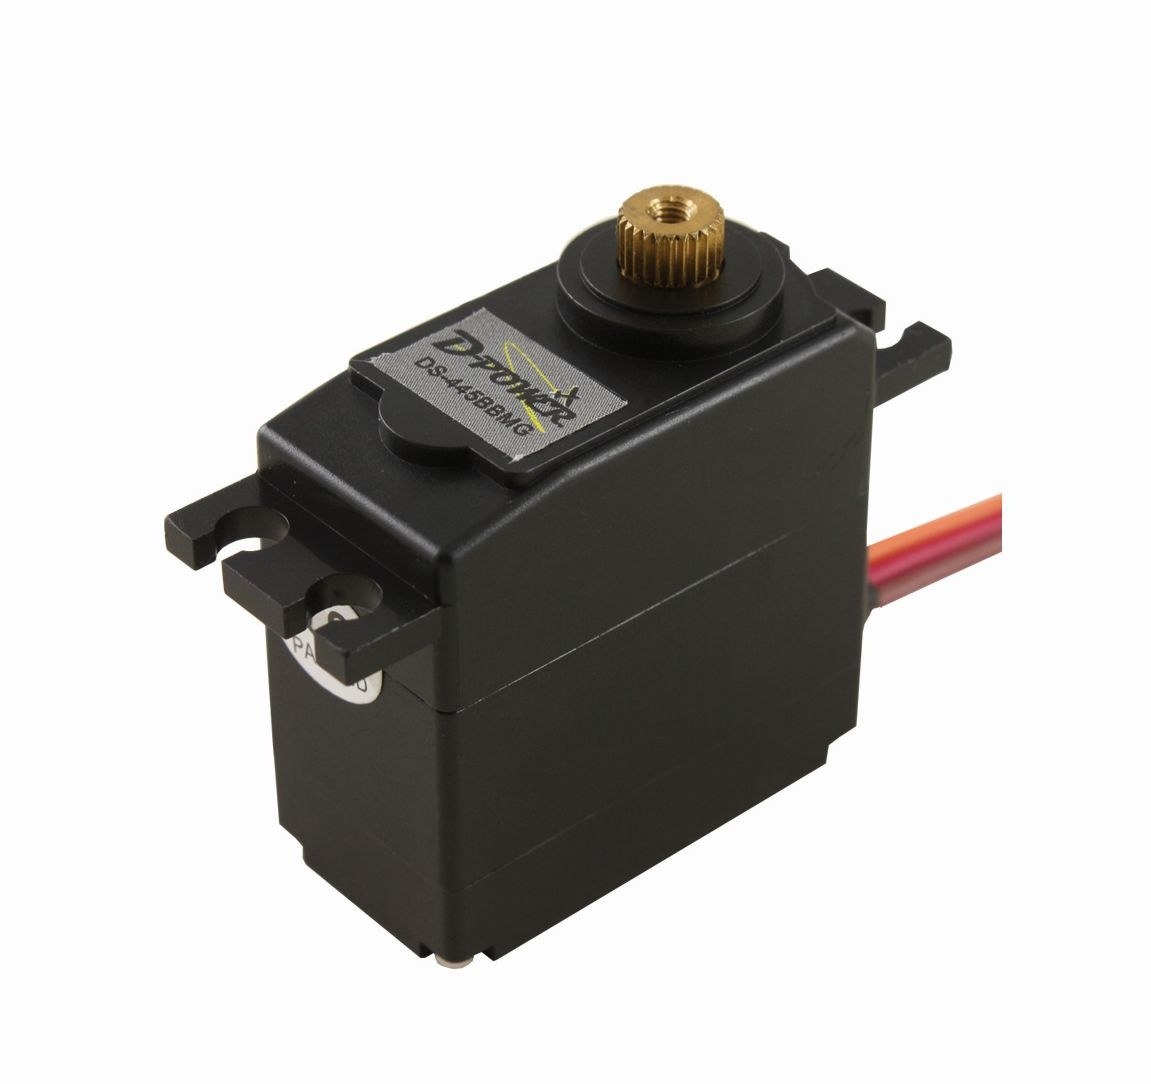 D-Power DS-445BB MG Digital-Servo